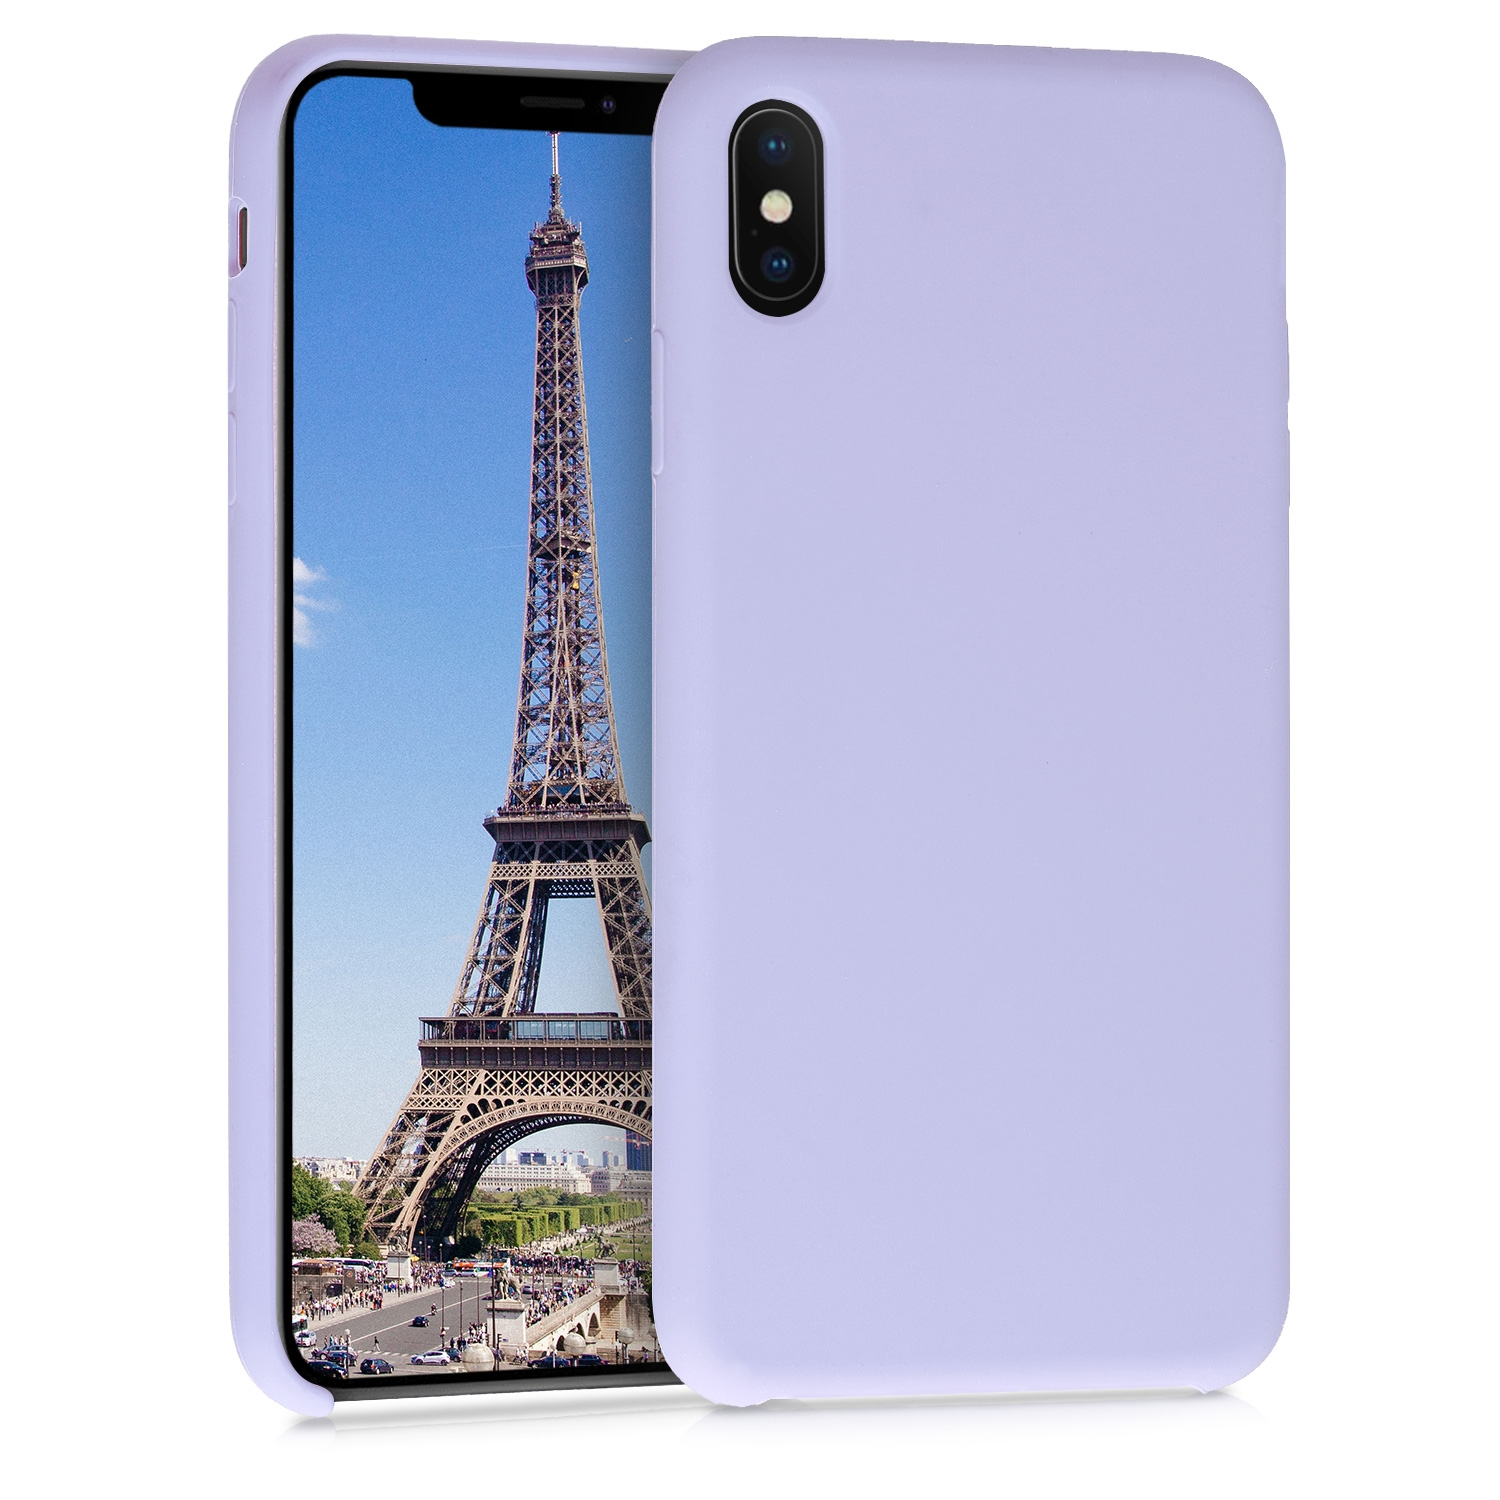 KW Θήκη Σιλικόνης iPhone XS Max - Soft Flexible Rubber Protective Cover - Light Lavender (45909.139)